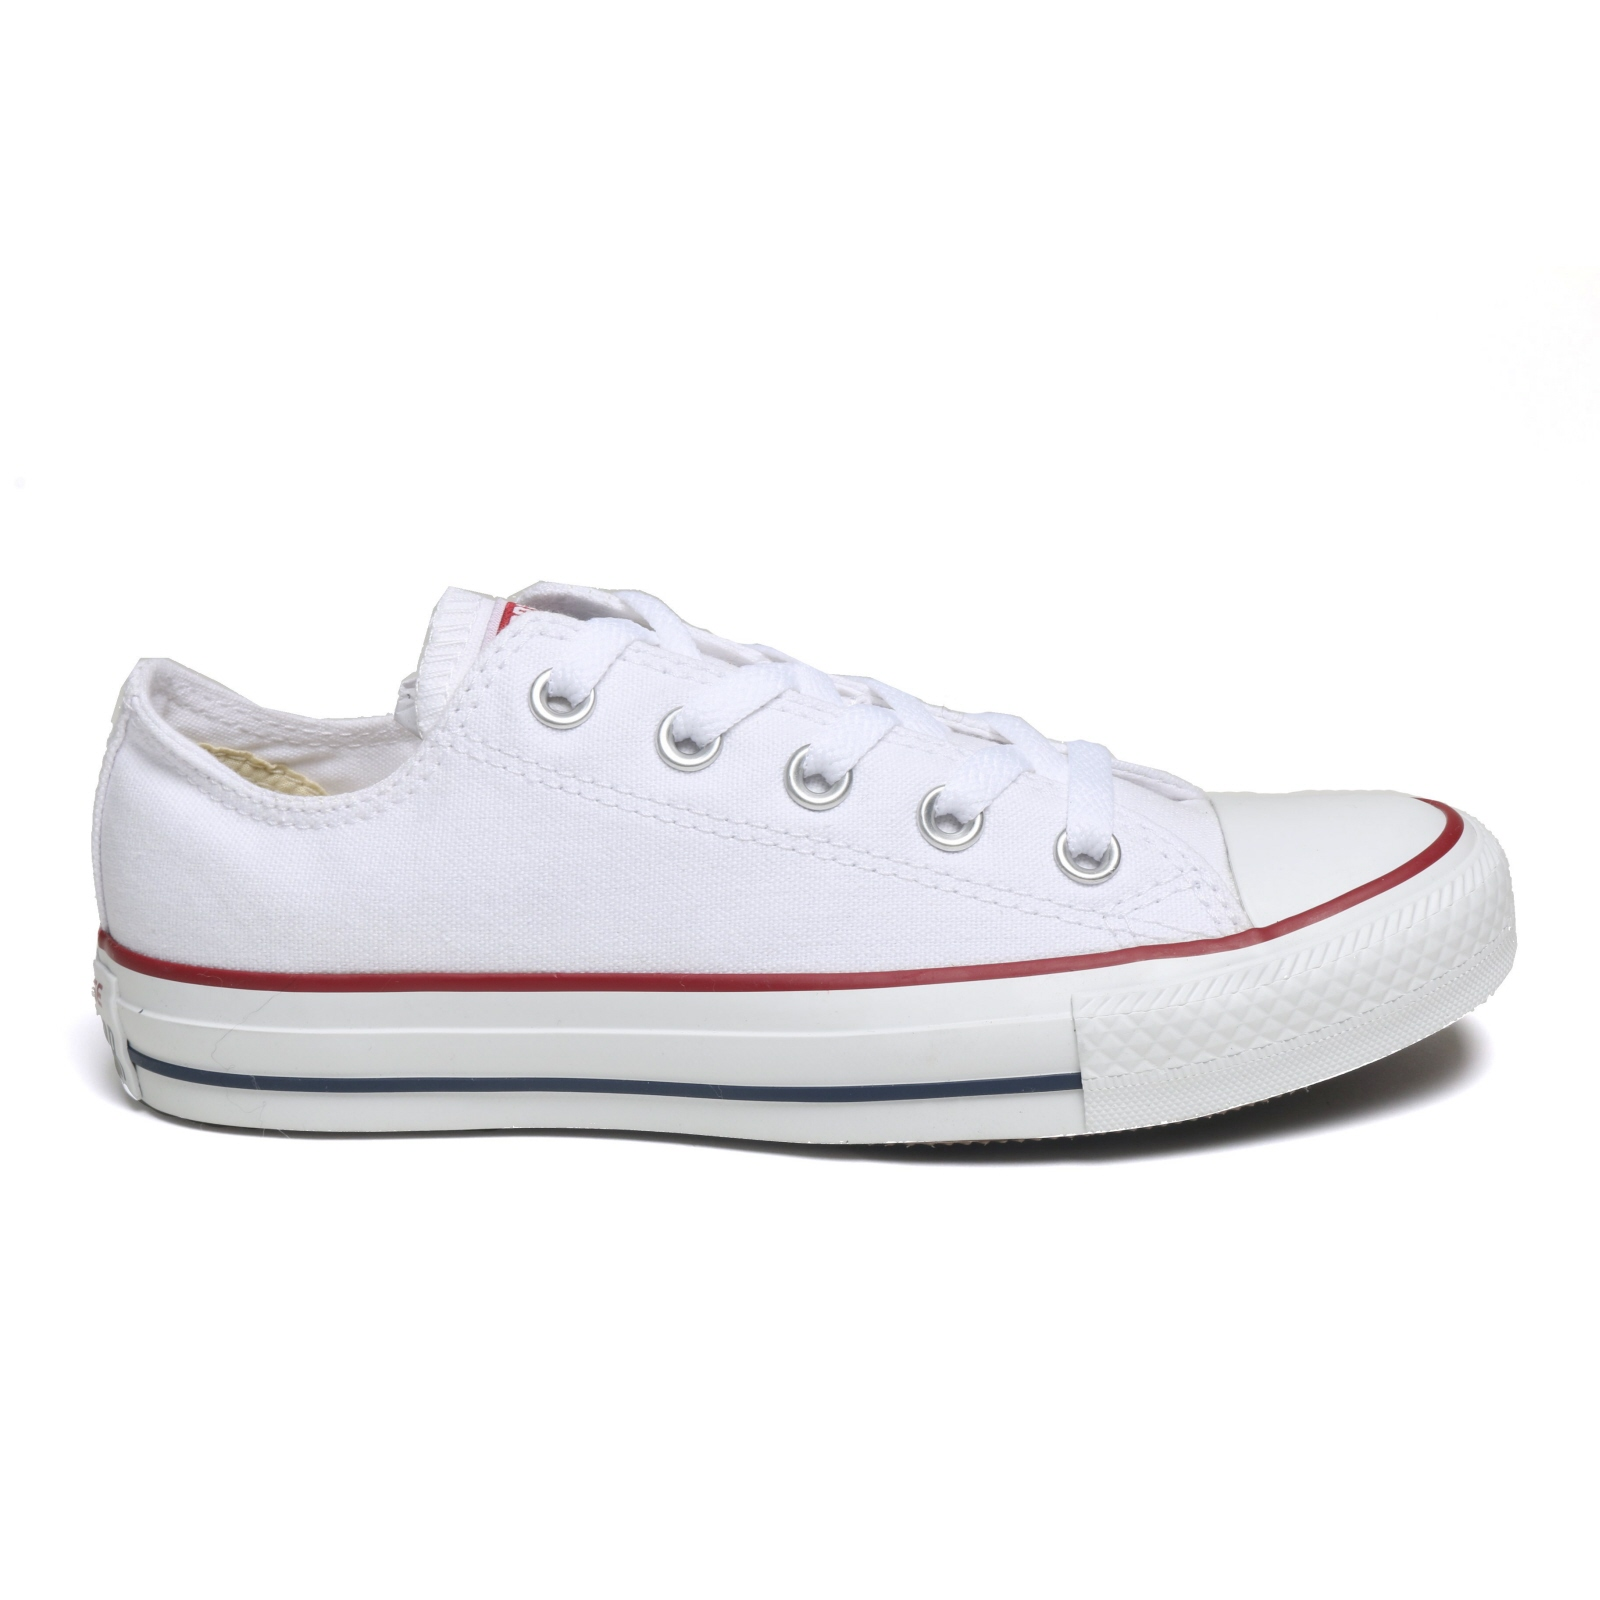 Sneaker weiss Converse AS OX CAN OPTIC weiss Sneaker Leinen